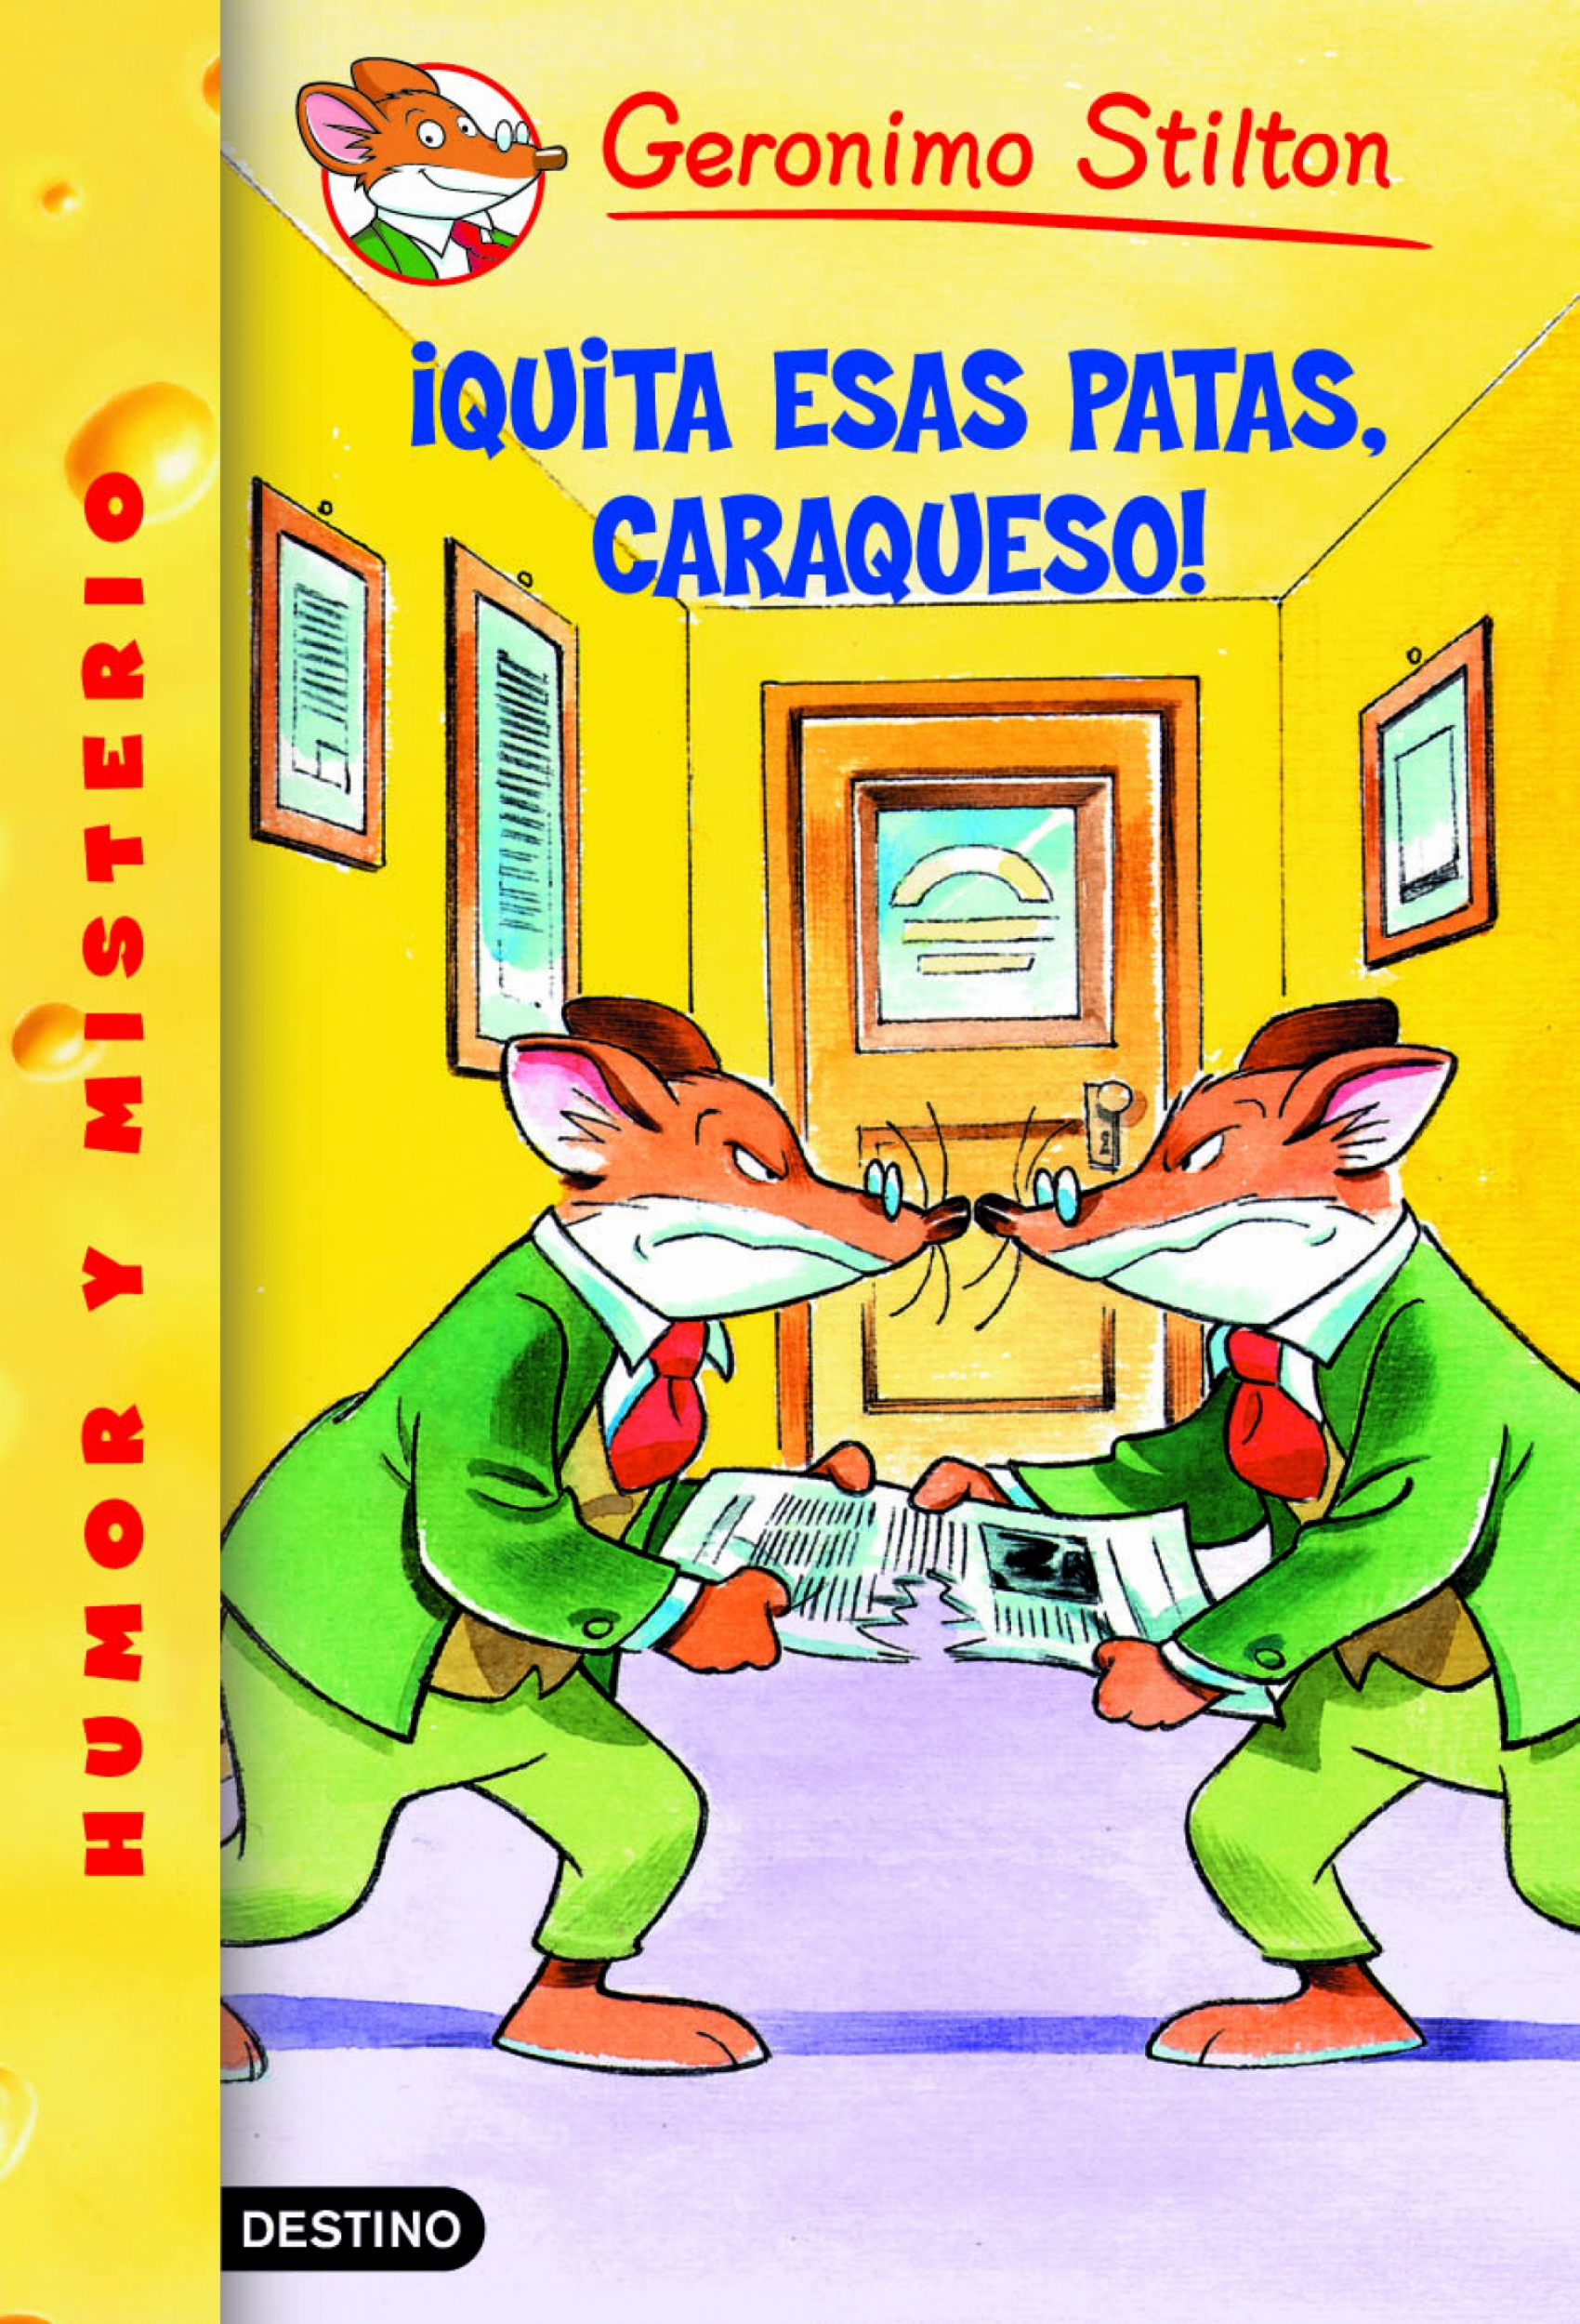 Geronimo Stilton - ¡Quita esas patas, caraqueso!